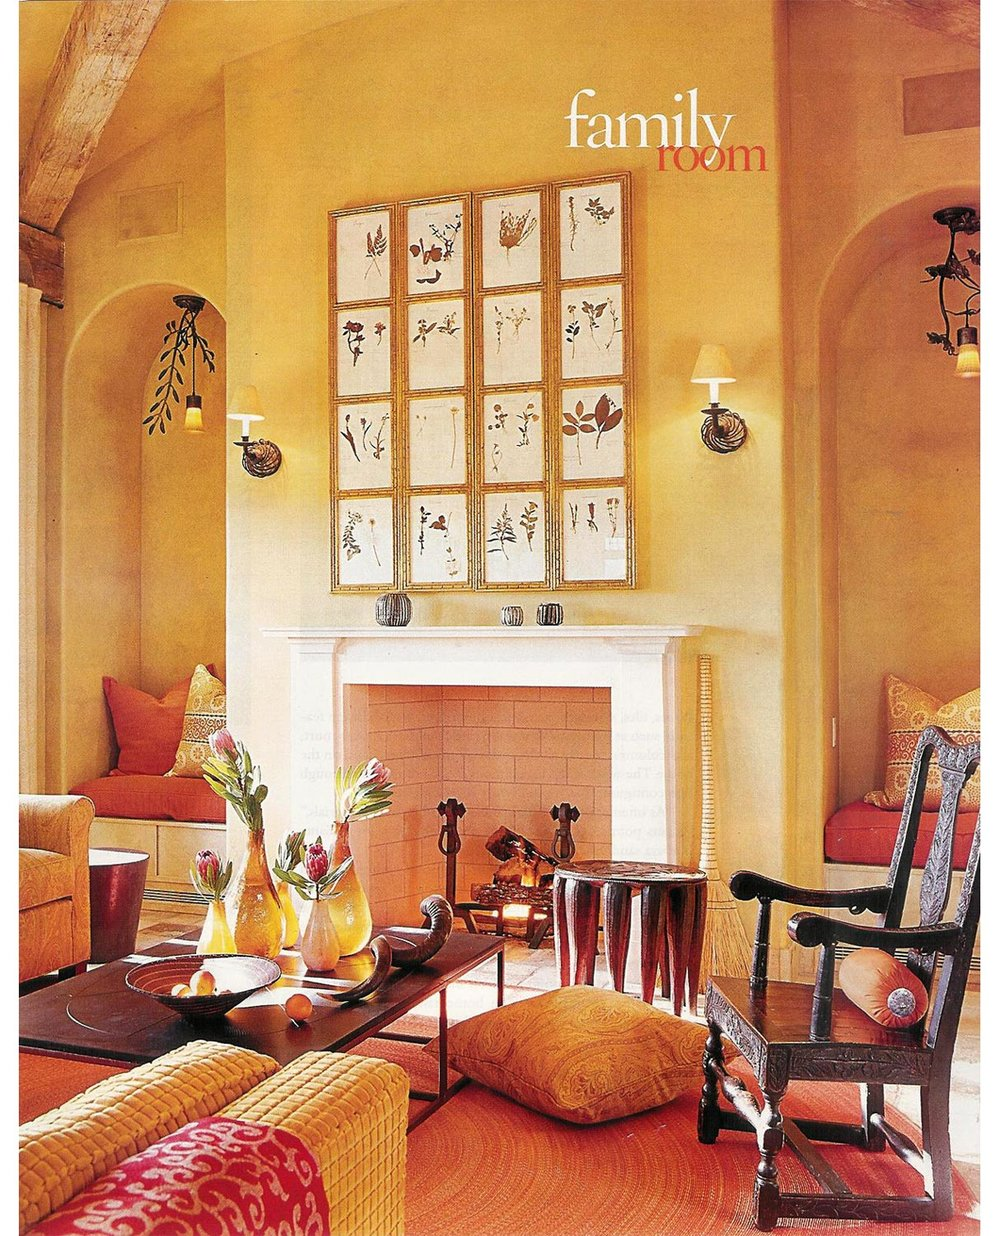 traditionalhome2004-p2_alemanmoore.jpg